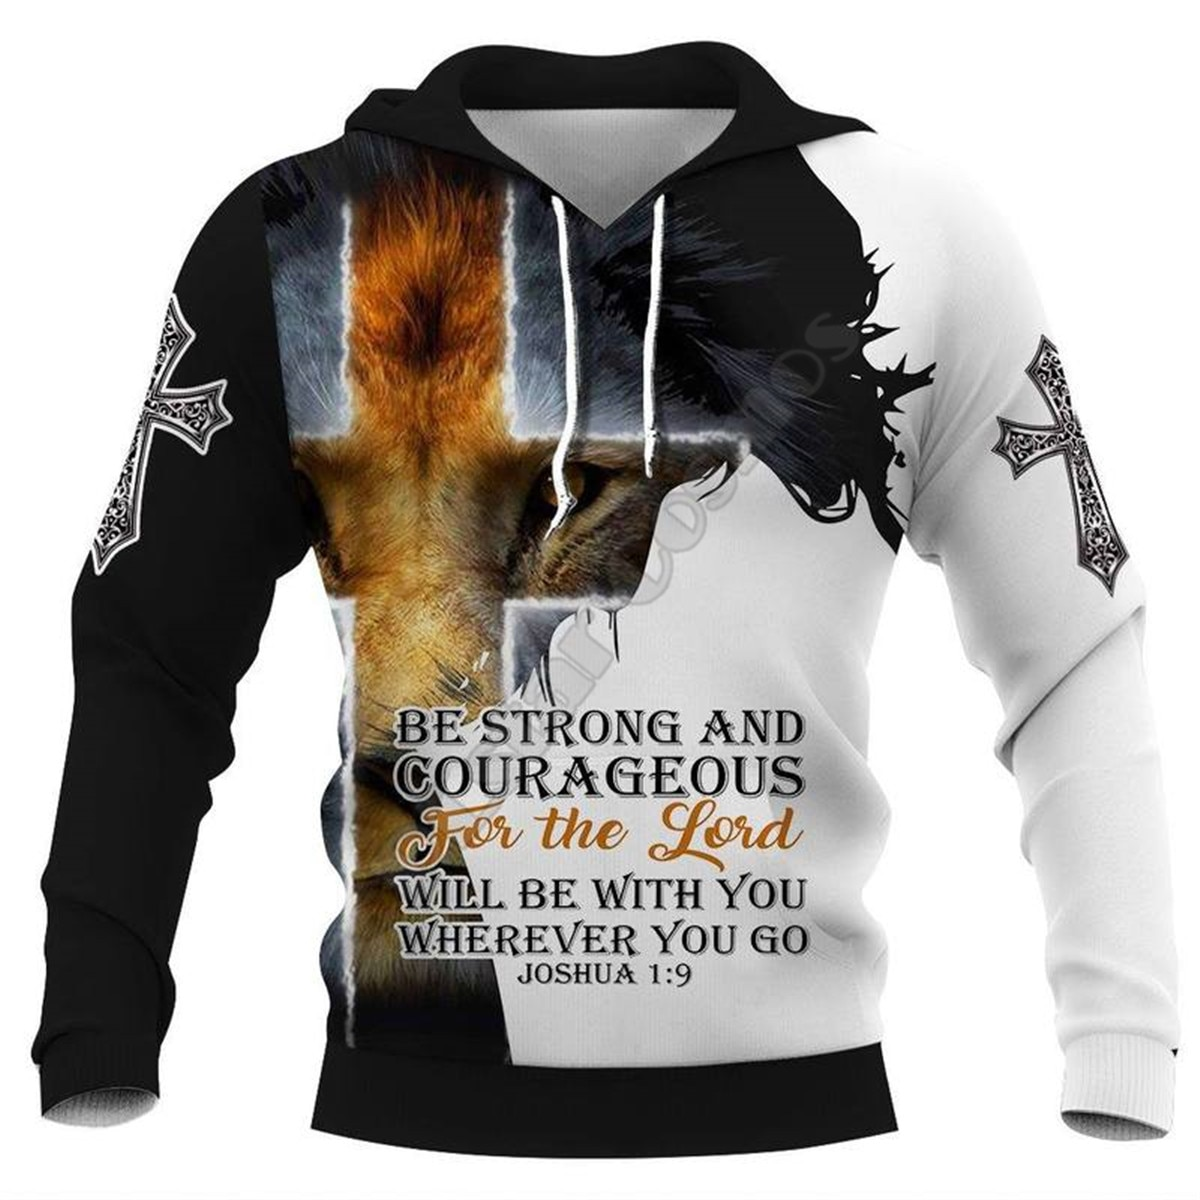 Knight Templar Armor 3D All Over Printed Hoodies Fashion Pullover Men For Women Sweatshirts Sweater Cosplay Costumes 13